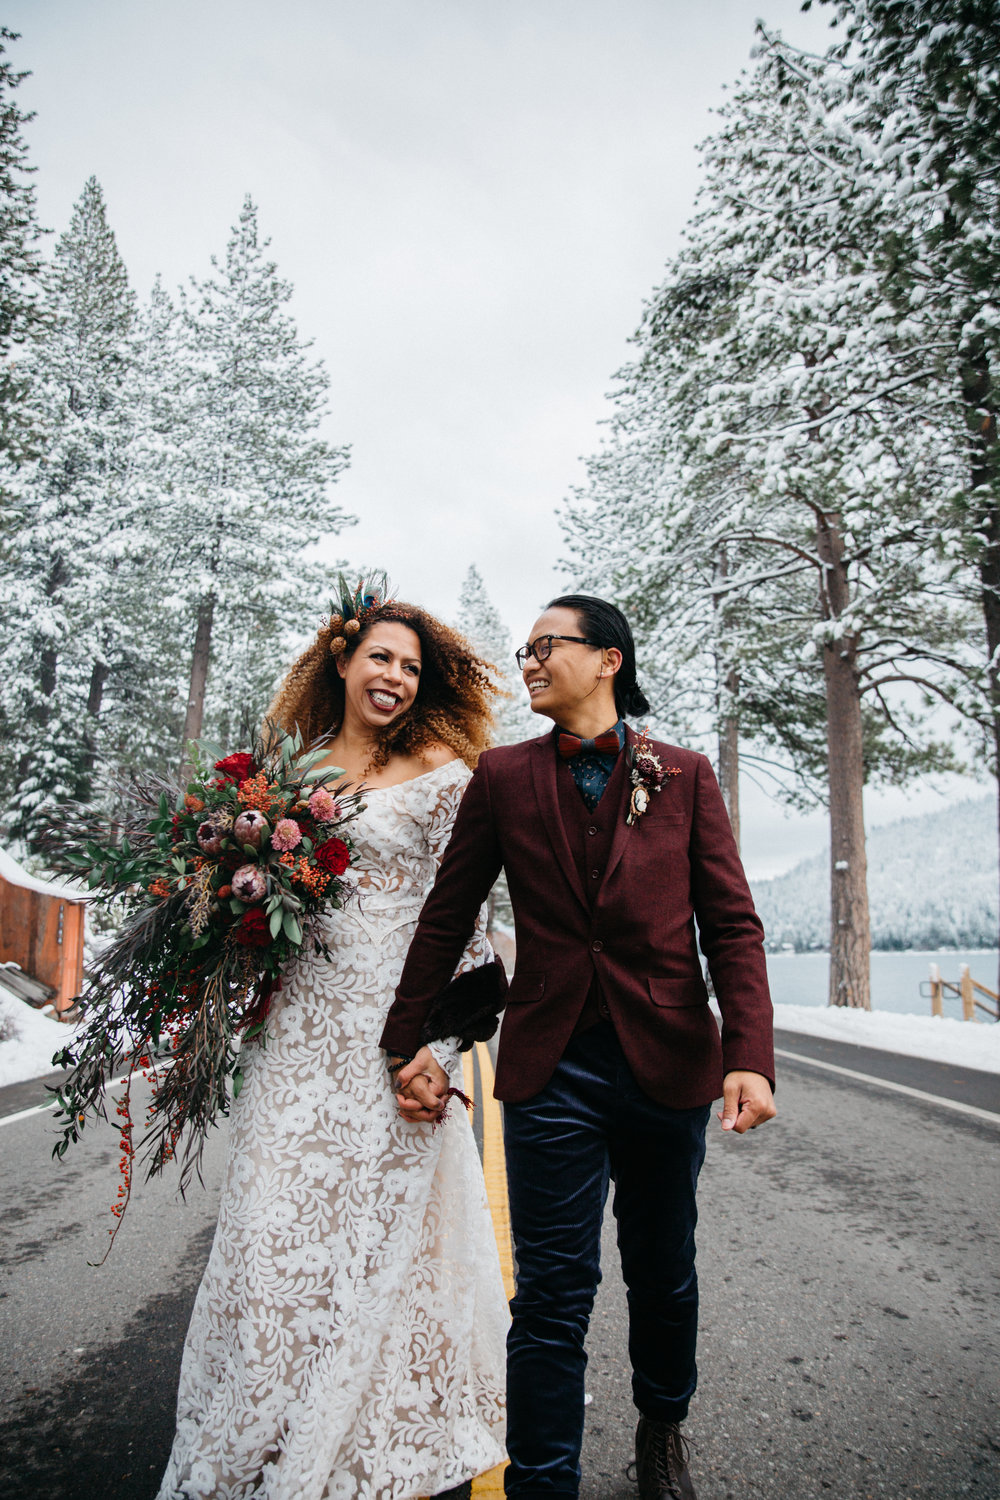 kiki & porntep - This elopement was the most beautiful mix of cold winter vibes and warm family energy. The day couldn't have been more magical. We started the day at a gorgeous house with a stunning view of the freshly snowed on Sierras. My bride literally drove herself (& me!) to the ceremony location in her Subaru, reciting her vows in her head. The colors outside were popping and vibrant against the white of the weather. We got to adventure afterward and pop some Champagne, jam out and off road into the wilderness to take some more intimate photos. I made lifelong friends and we had such a great time. I'm grateful to have been such a huge part of their special day. ♥️